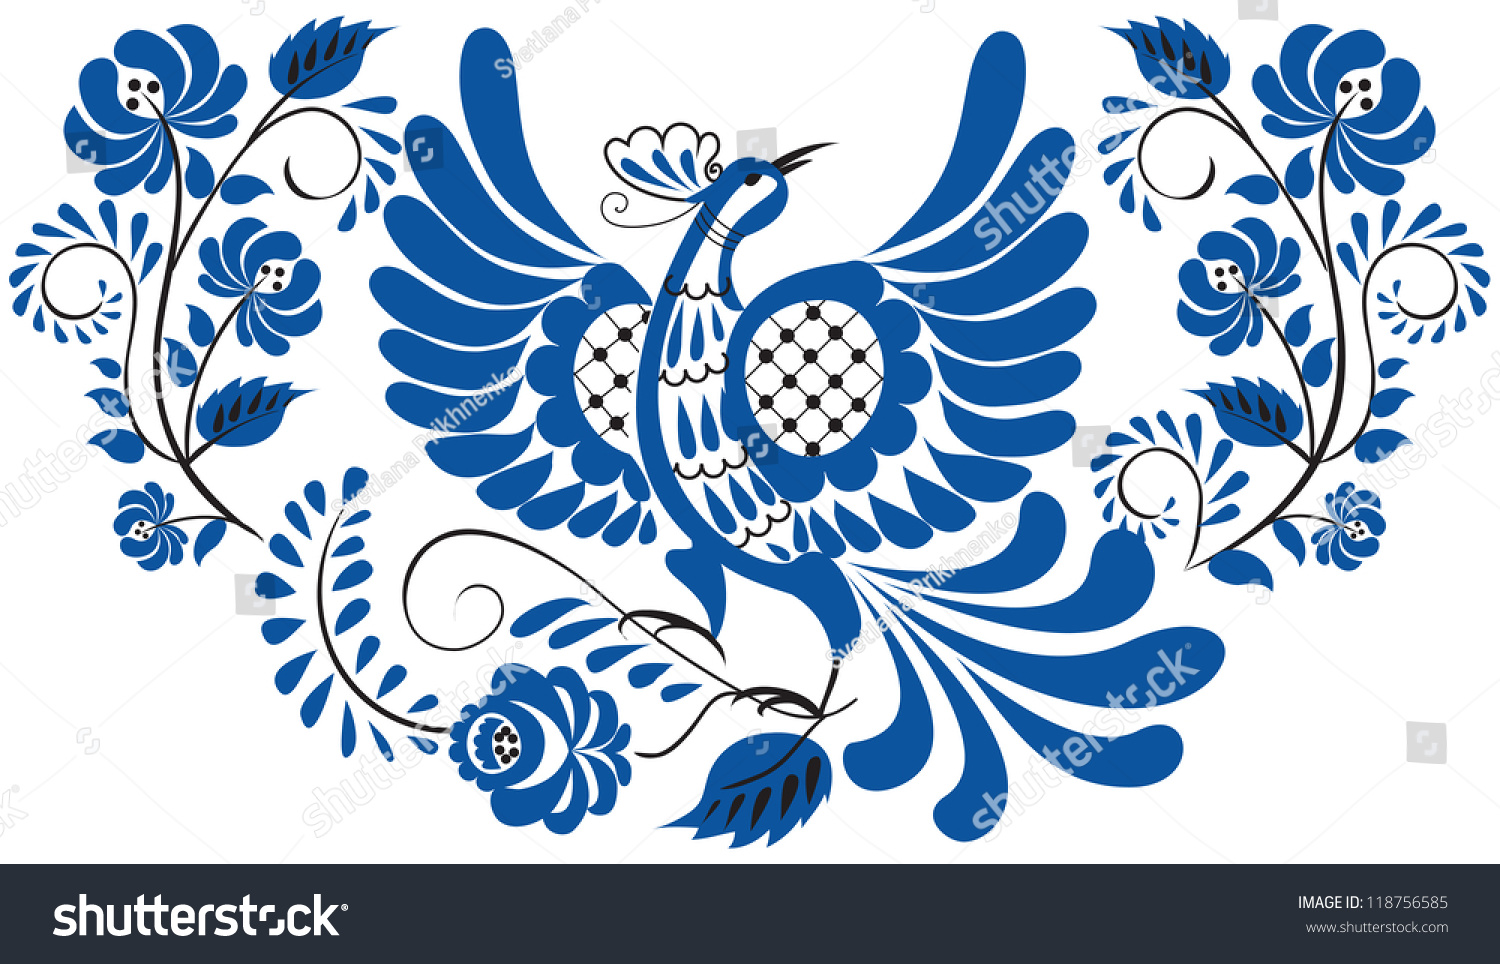 Artistic floral element abstract gzhel folk art blue flowers stock - Russian National Floral Pattern Gzhel Bird On The Branch With Leaves Swirls And